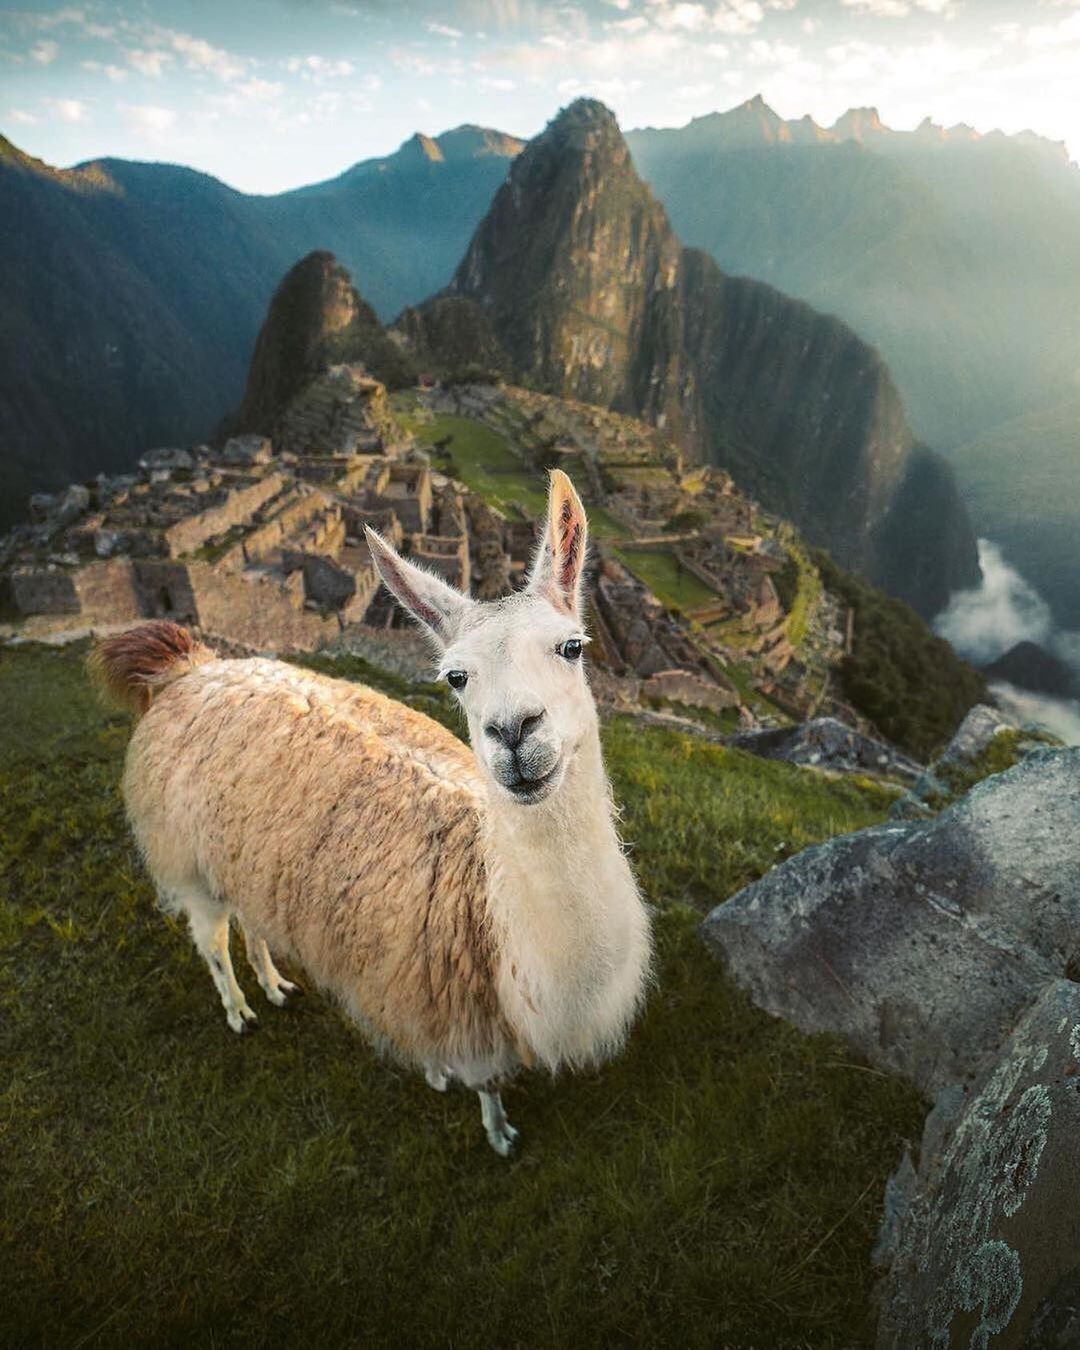 Llama 🦙 In Machu Picchu, Peru 🇵🇪 by @emmett_sparling . https://t.co/6LQFjNtY96